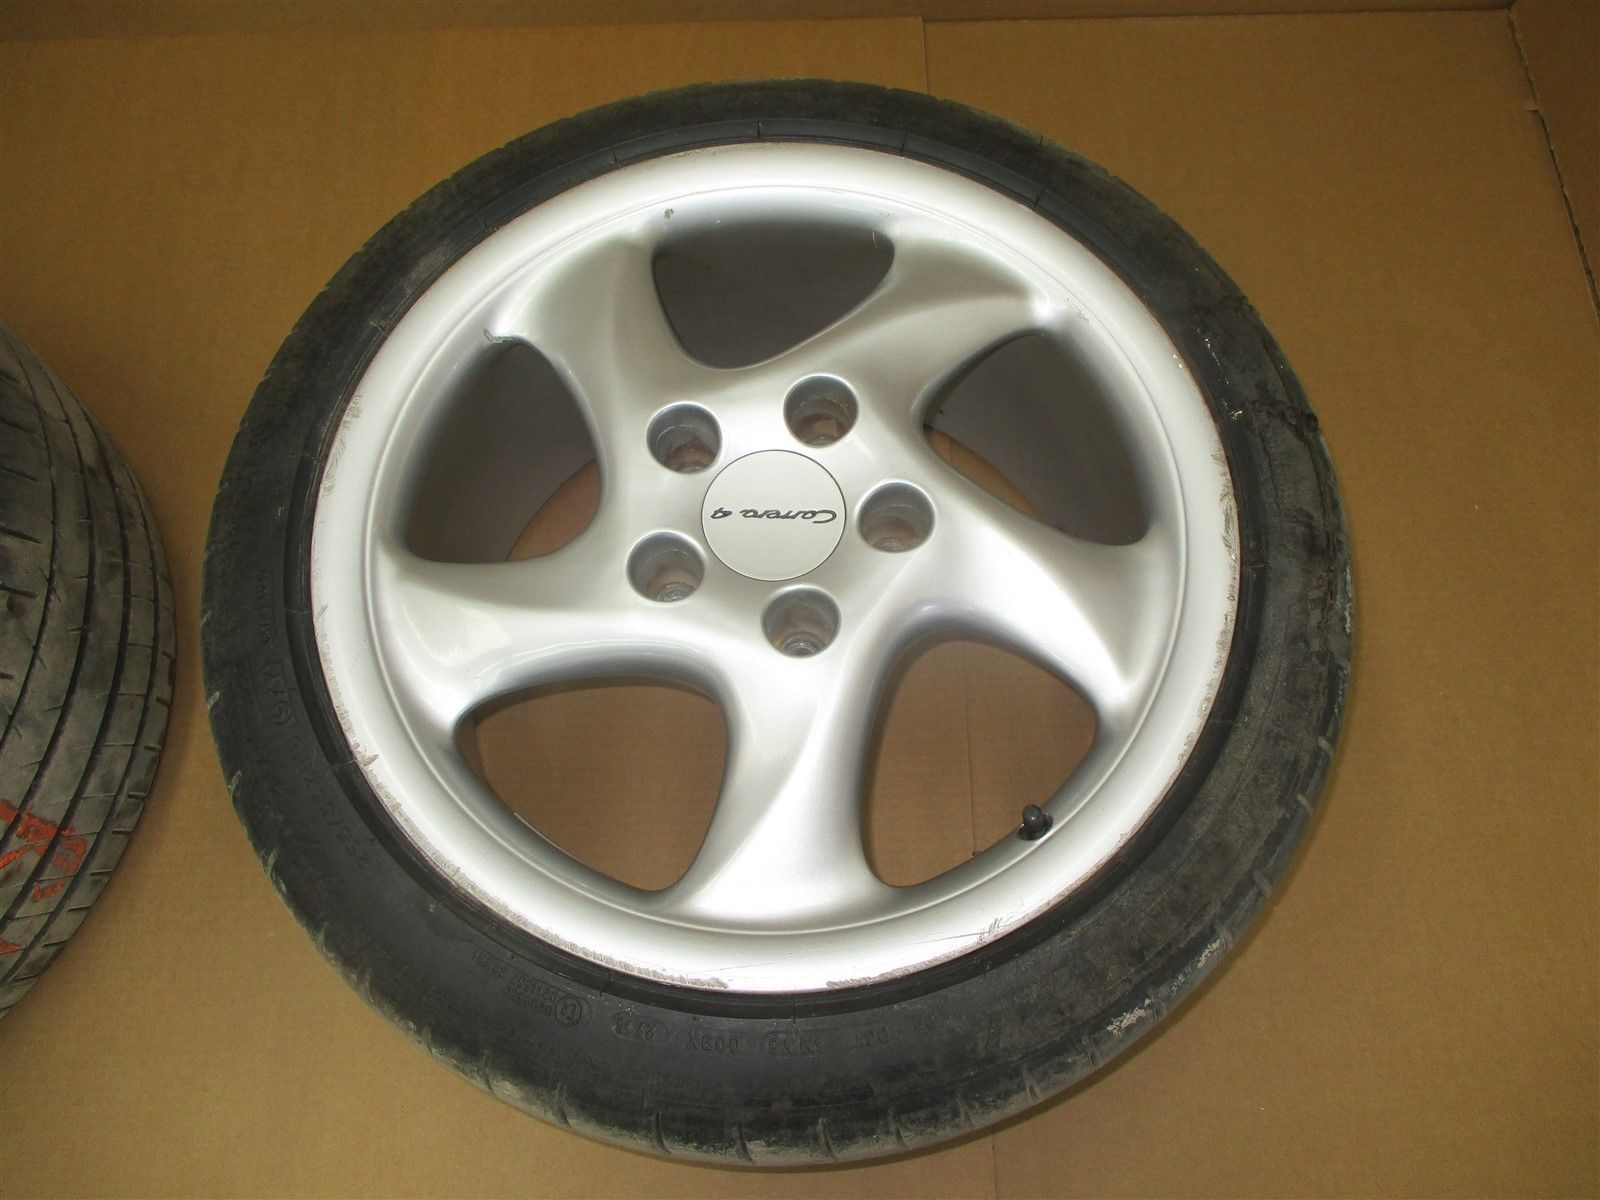 01 Carrera 4 911 Porsche 996 REAR STN RIMS WHEELS 10Jx18ET65 99336214004 55,659